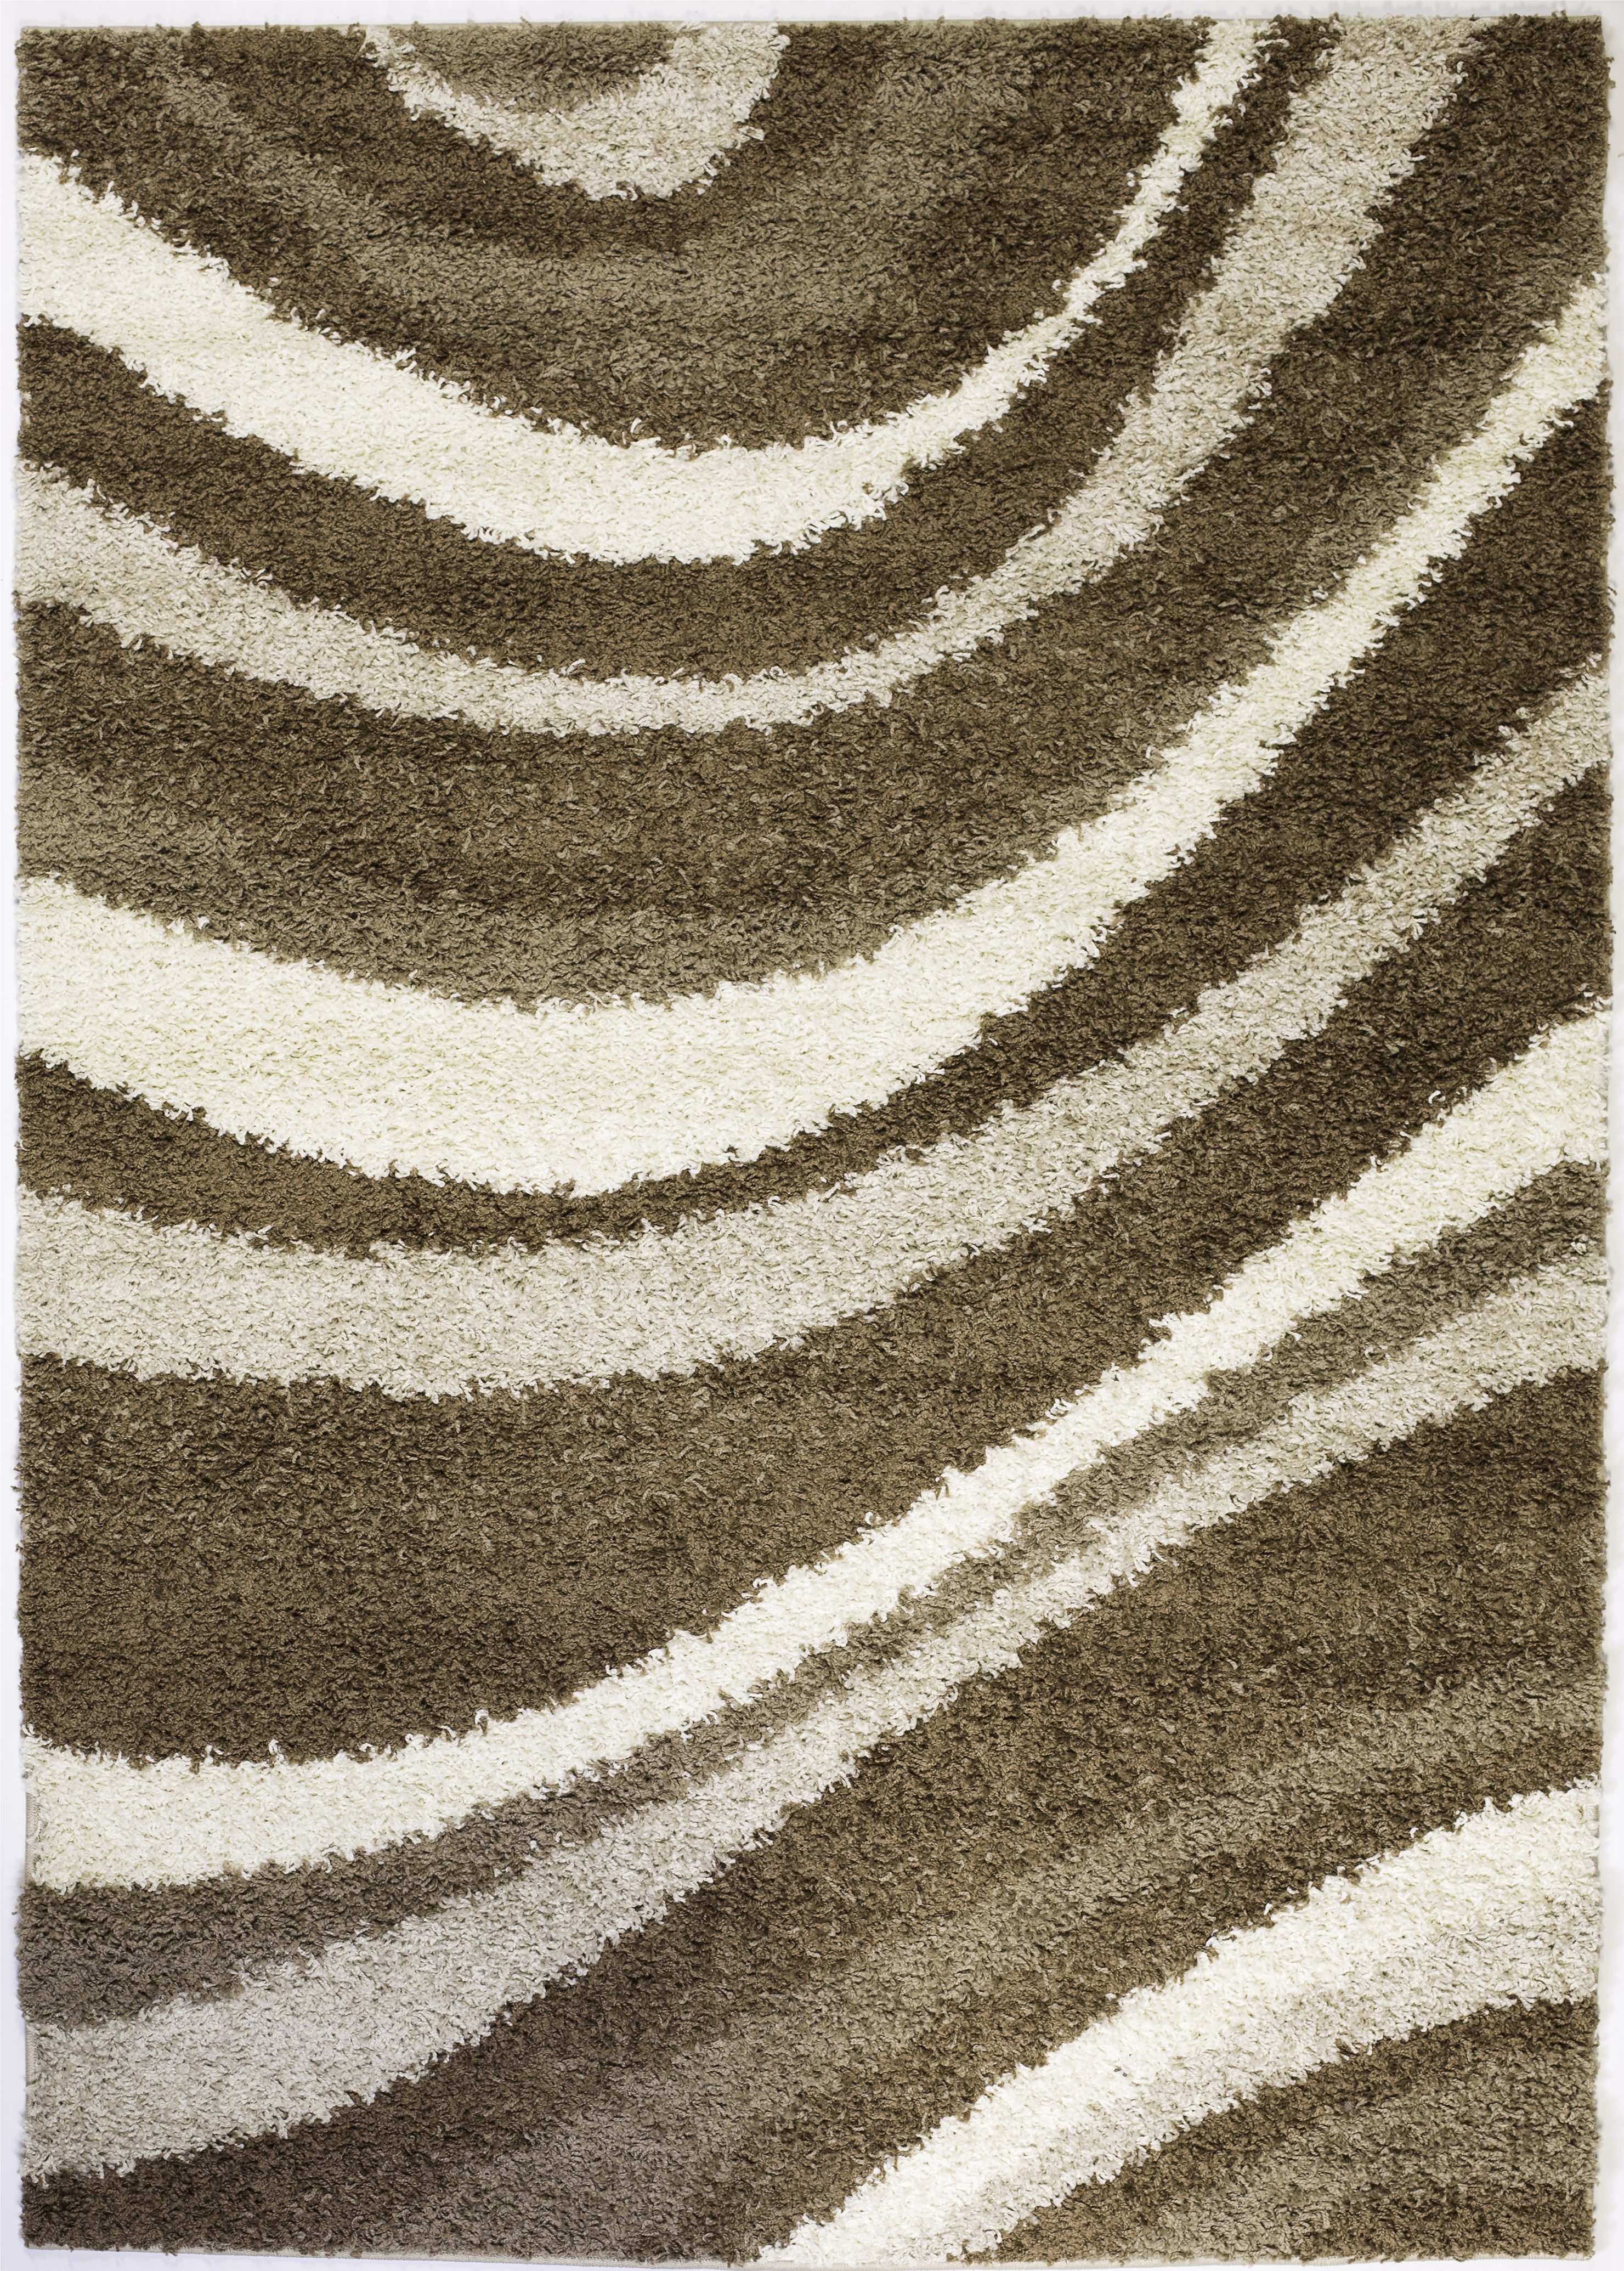 carpet texture modern modern brown carpet texture NCLMFZR